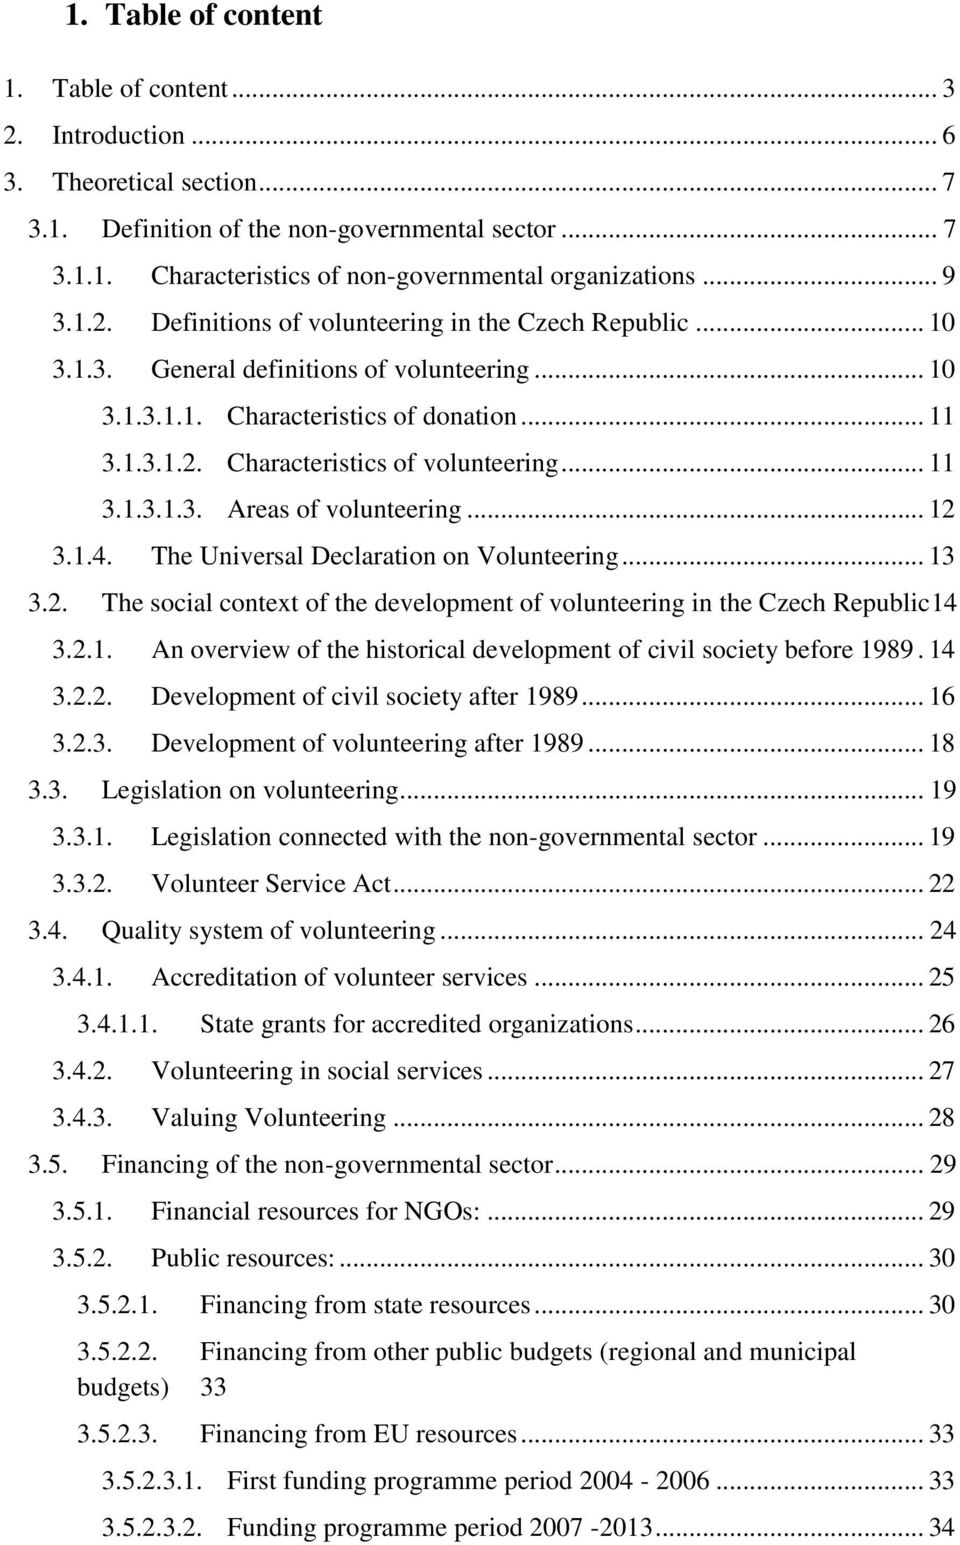 .. 11 3.1.3.1.3. Areas of volunteering... 12 3.1.4. The Universal Declaration on Volunteering... 13 3.2. The social context of the development of volunteering in the Czech Republic14 3.2.1. An overview of the historical development of civil society before 1989.